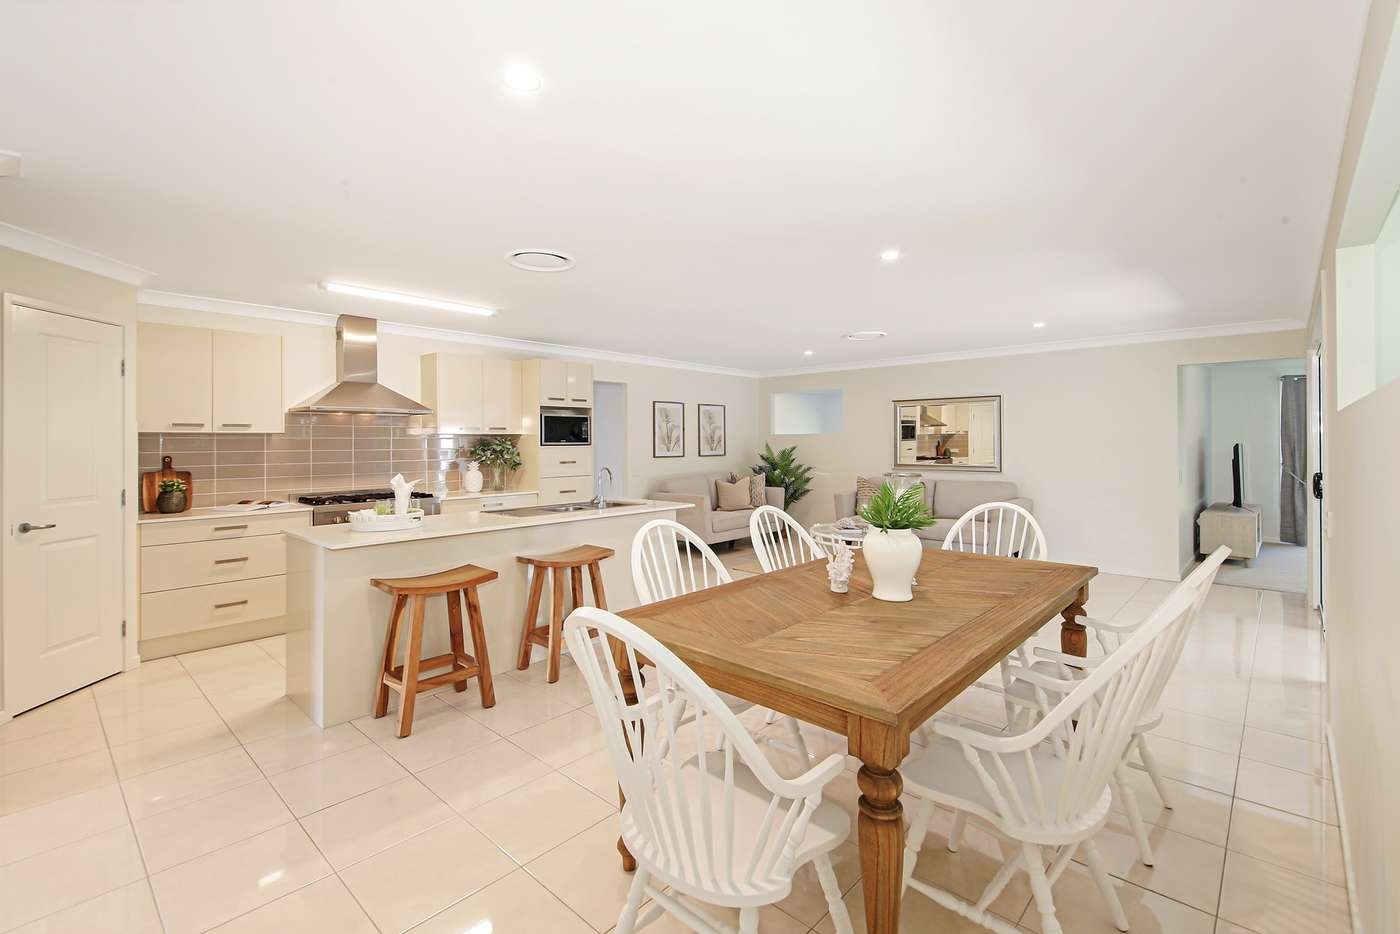 Fifth view of Homely house listing, 32 Maidstone Crescent, Peregian Springs QLD 4573